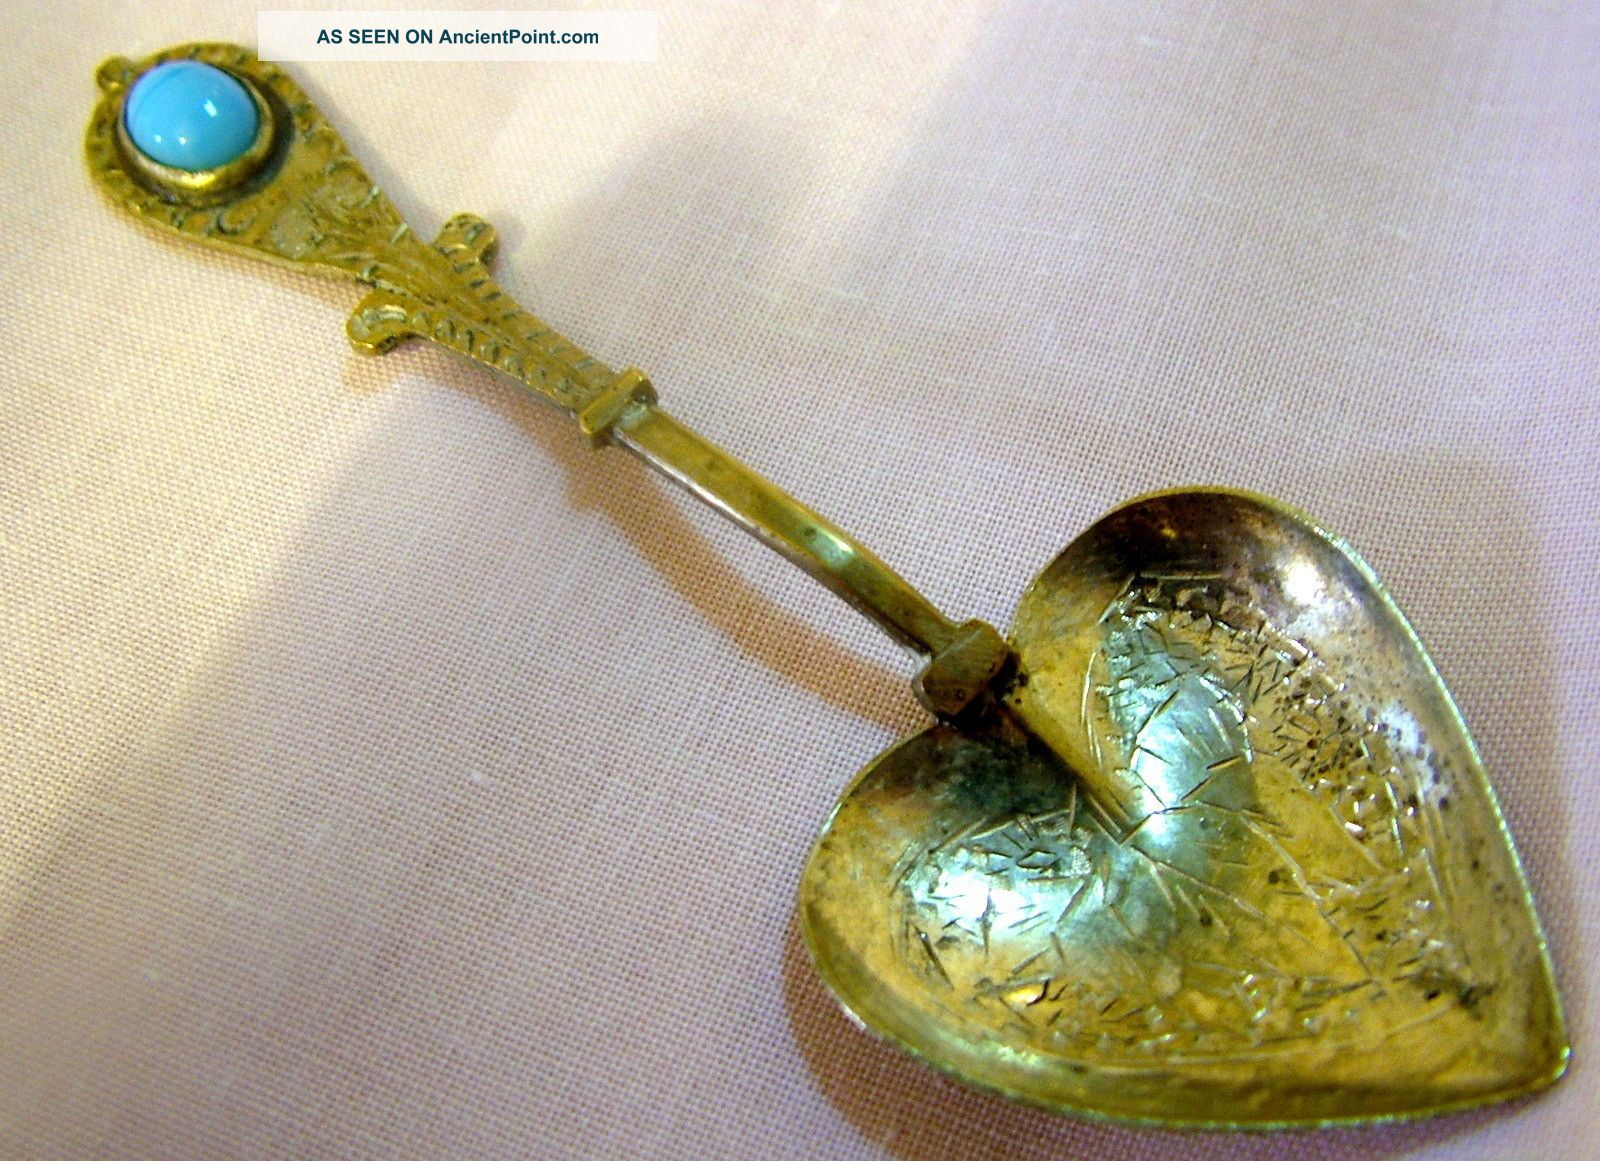 Vintage Hand Made Indian / Persian White Metal Spoon Set With A Blue Stone Other photo